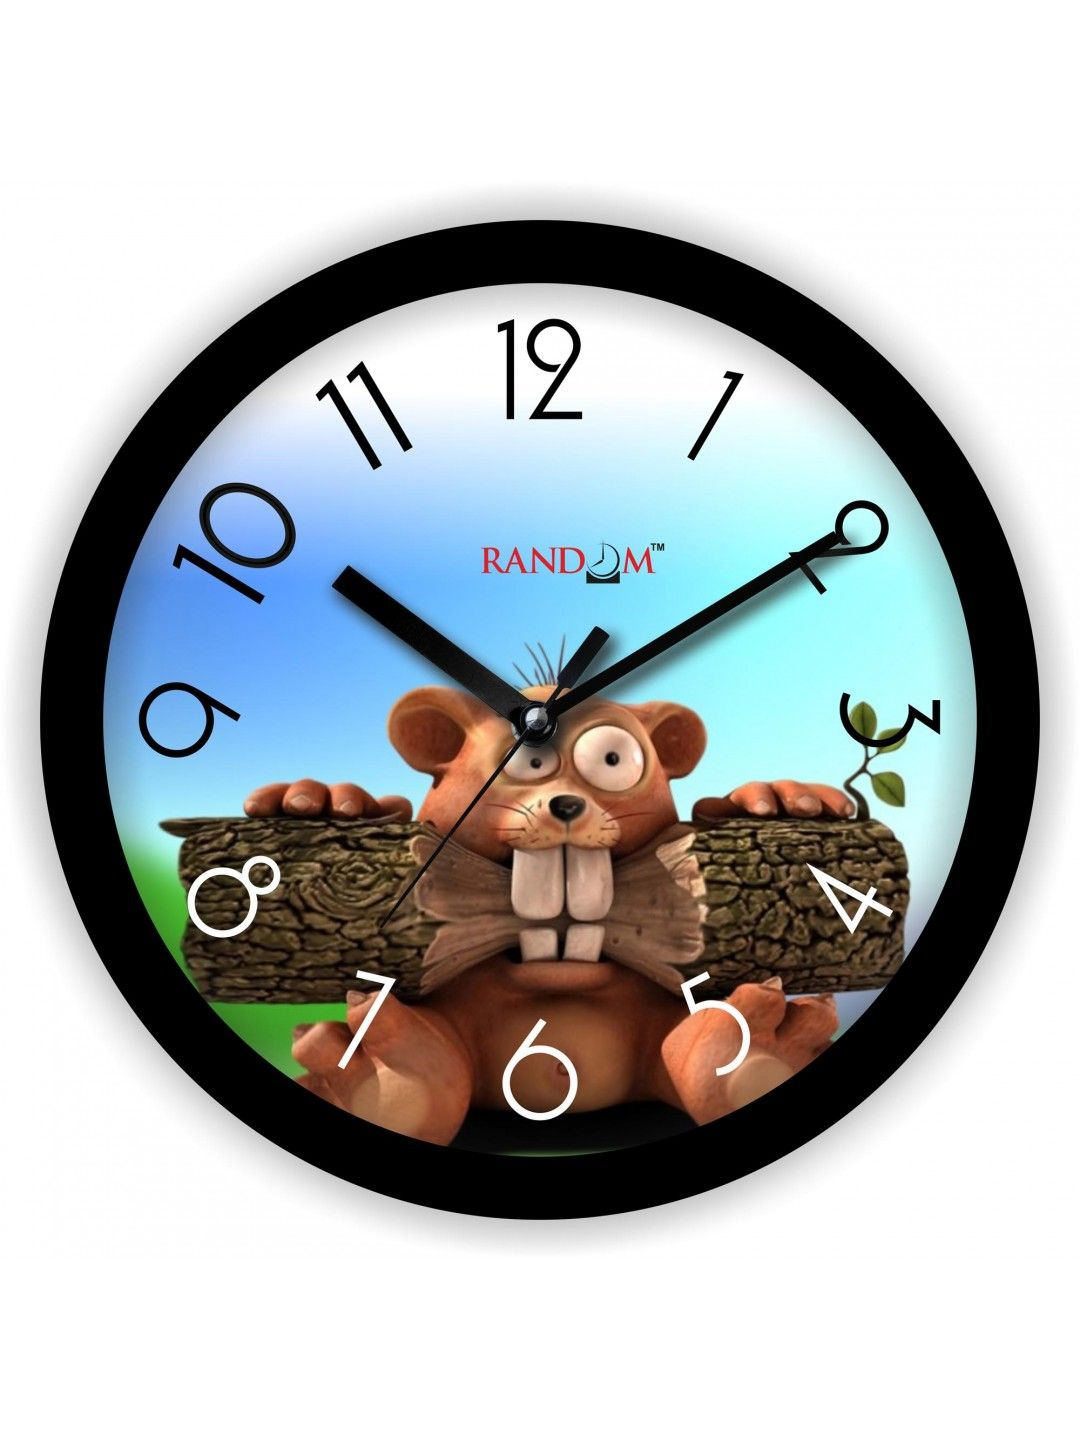 Colorful wooden designer analog wall clock buy online colorful colorful wooden designer analog wall clock buy online colorful wooden designer analog wall clock at best price in india colorful wooden rings to suit amipublicfo Gallery